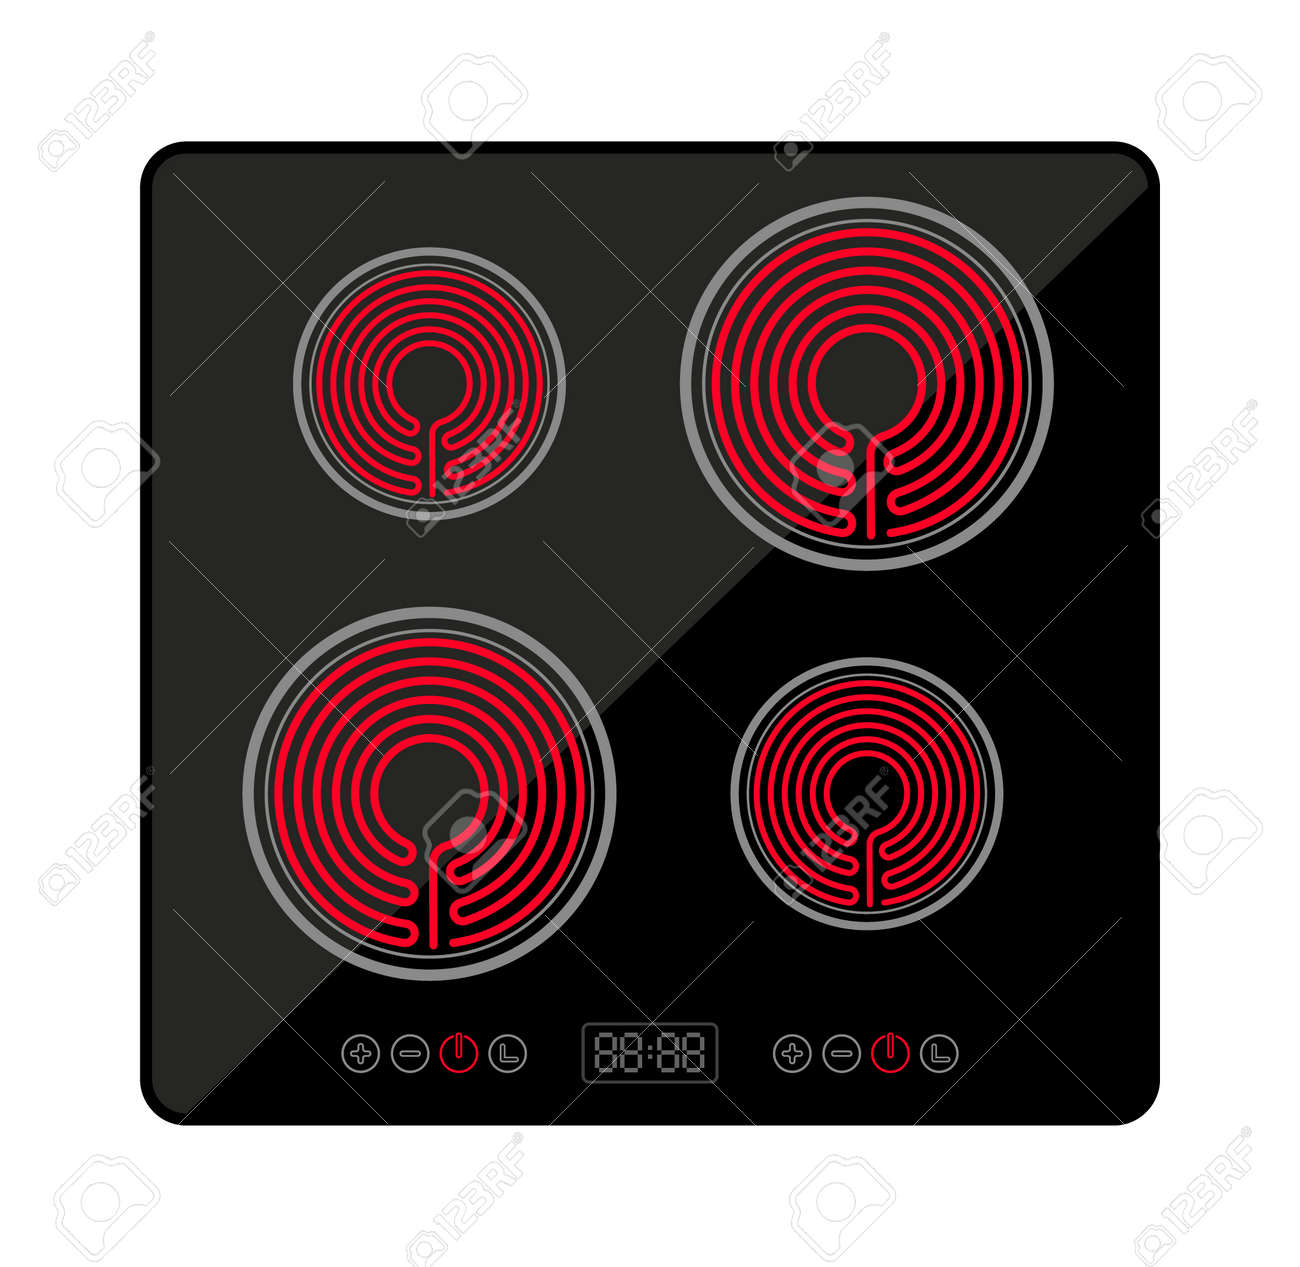 Induction stove cooker electric hob heater. Cooctop ceramic electric induction stove spiral top view - 167089255